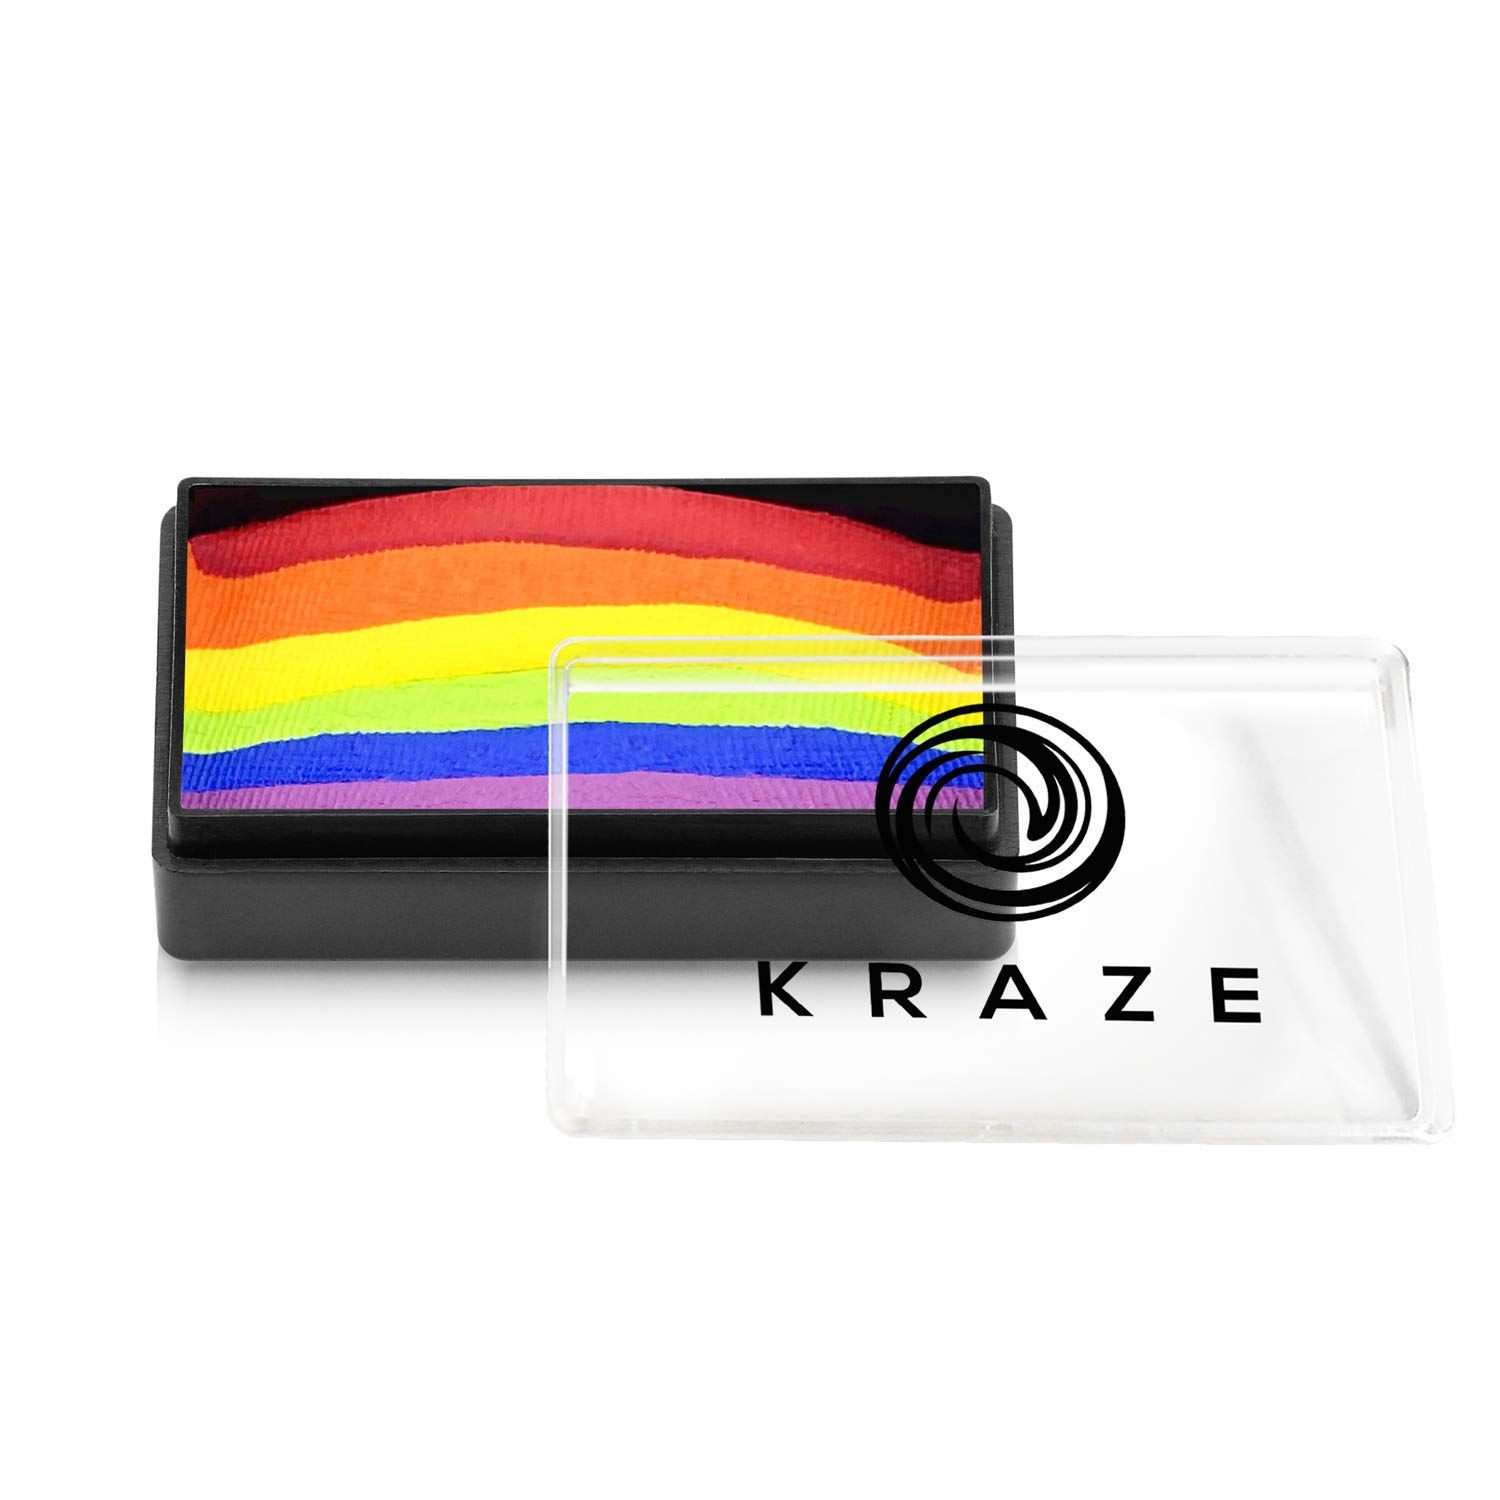 Kraze FX Dome Stroke - Deep Rainbow (25 gm), Professional 1-Stroke Split Cake, Hypoallergenic, Non-Toxic, Water Activated Face & Body Painting Makeup Supplies for Sensitive Skin, Kid Safe, Adults